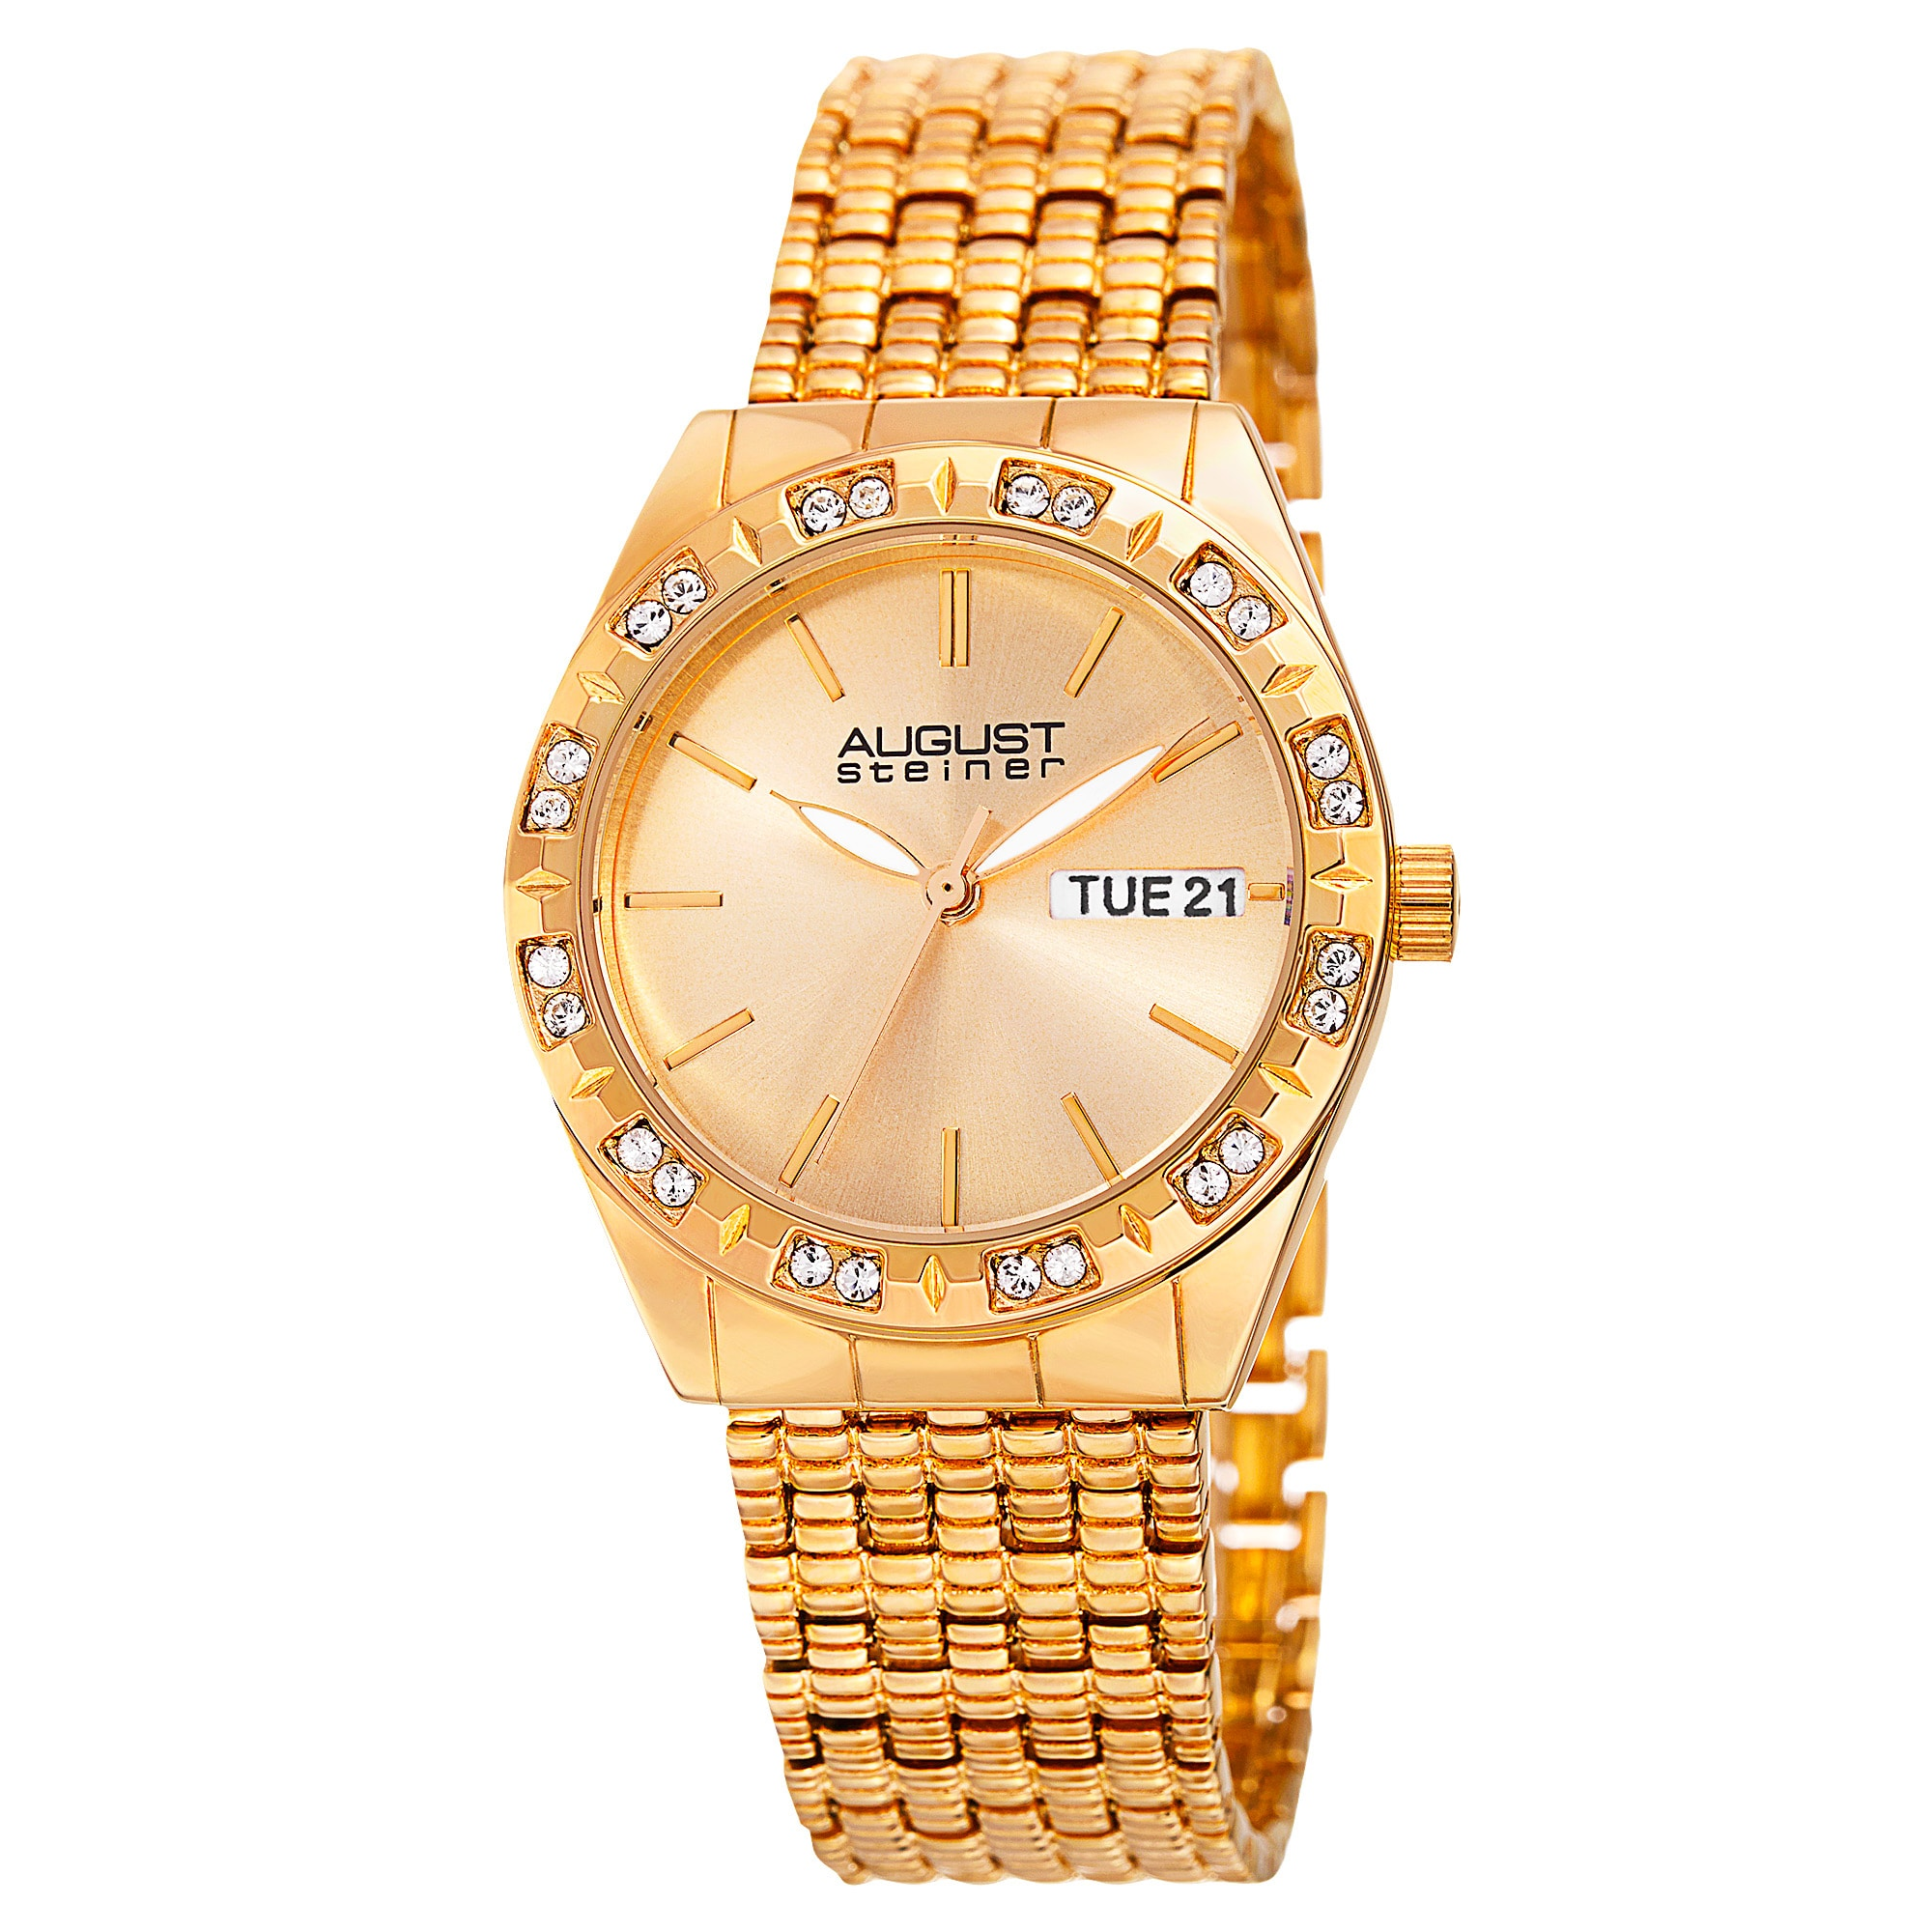 85723b8dbc3c Shop August Steiner Women s Diamond- Accented Alloy Built 3-Piece Gold-Tone  Bracelet Watch Set - GOLD - Free Shipping Today - Overstock - 10792423